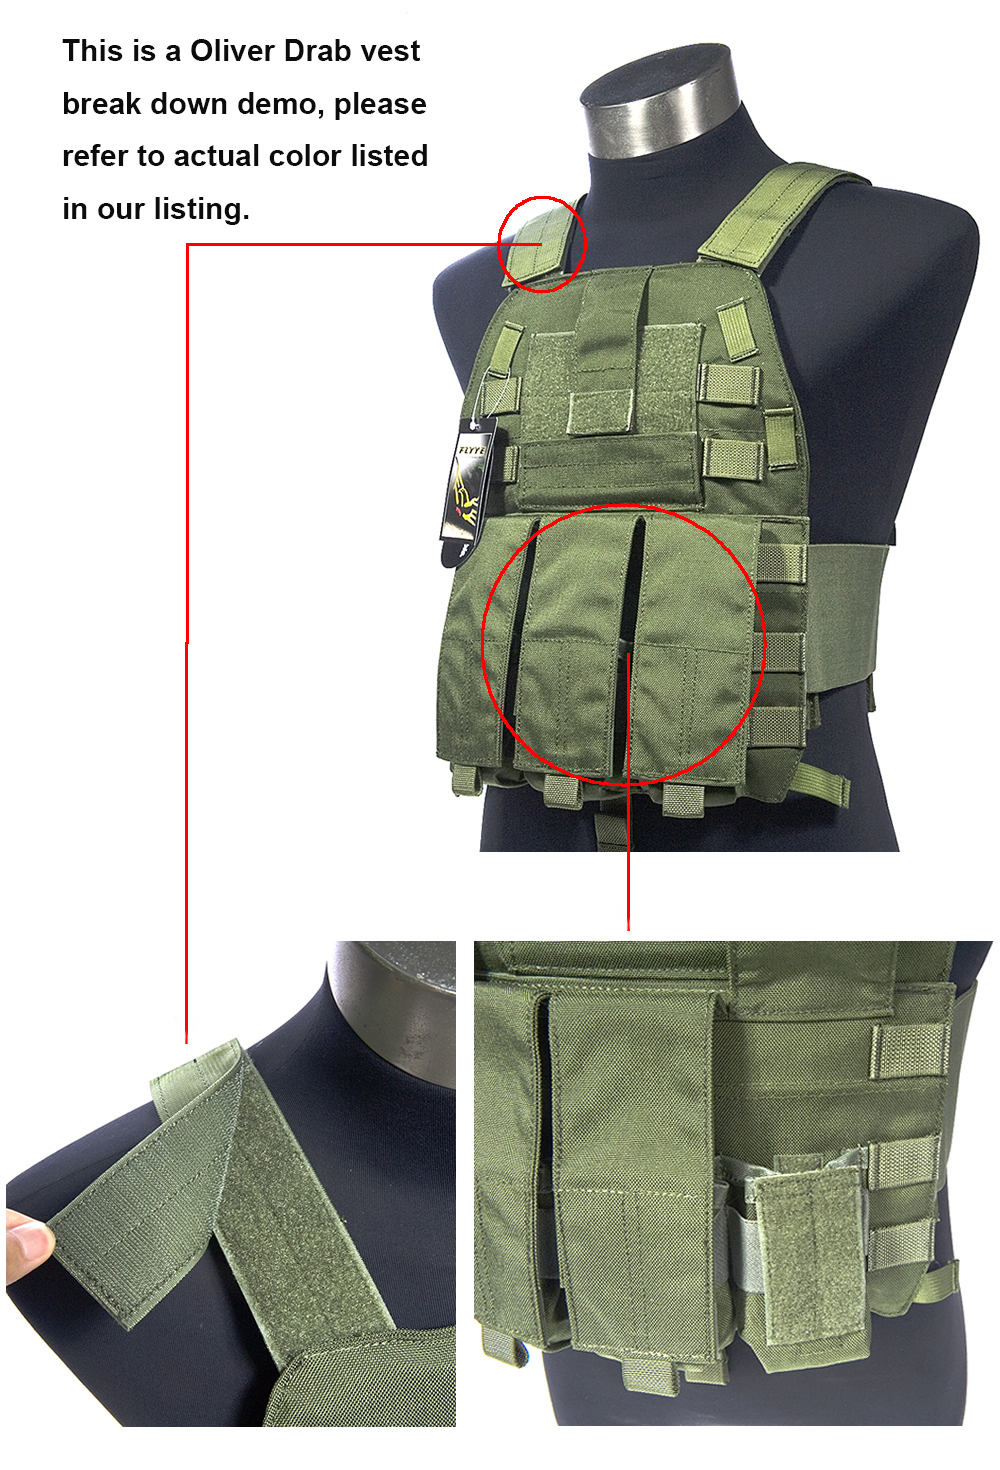 MILITECH Mil Spec Military LT6094K Oliver Drab OD Plate Carrier Combat Molle Tactical Vest Army Military Combat Vests Carrier mil spec military lt6094 coyote brown cb combat molle tactical vest army military combat vests lbt6094 style gear vest carrier